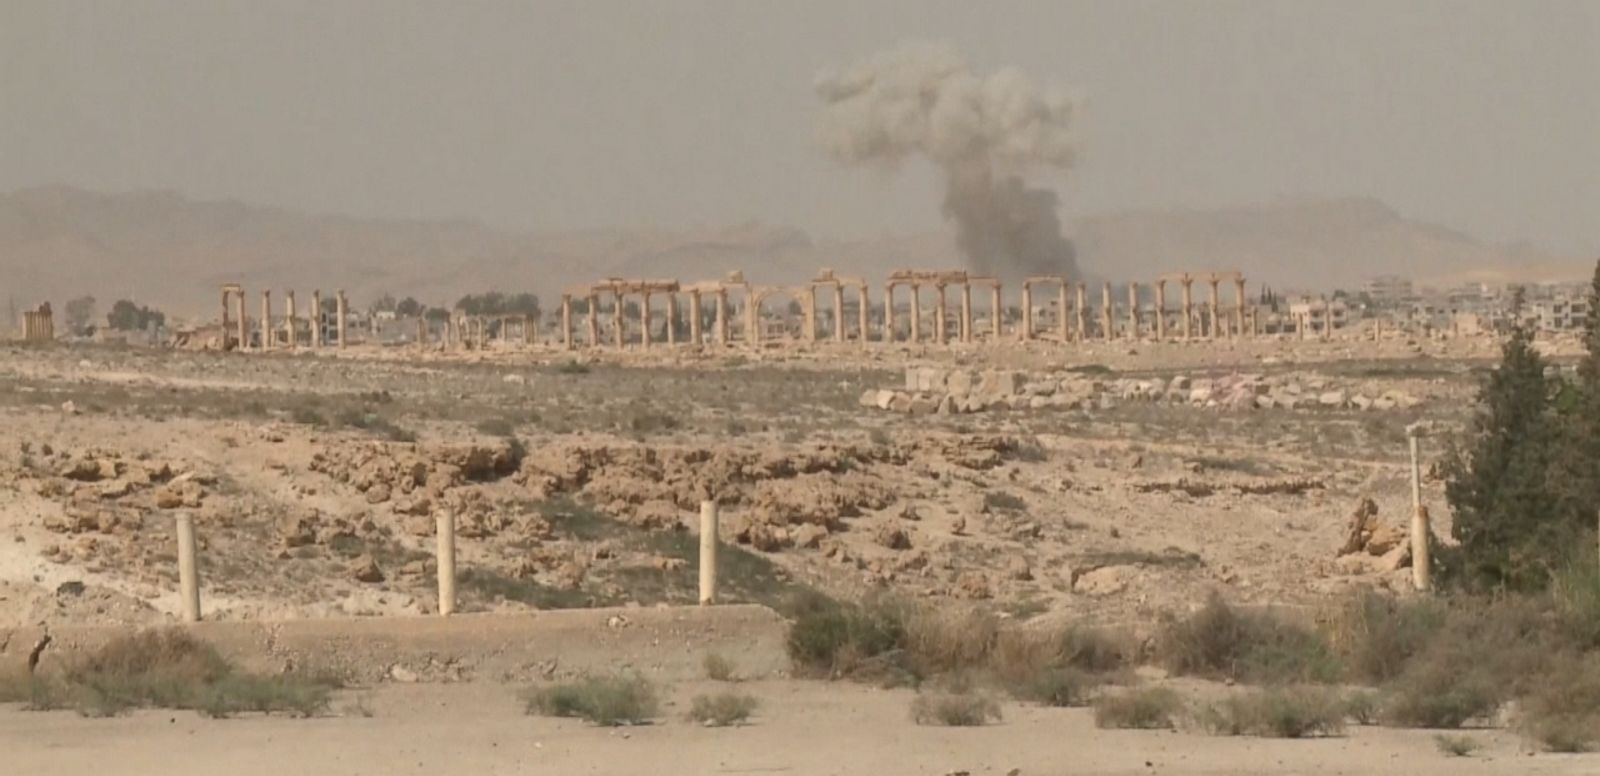 VIDEO: An arch in the ancient city of Palmyra is the latest architectural casualty.